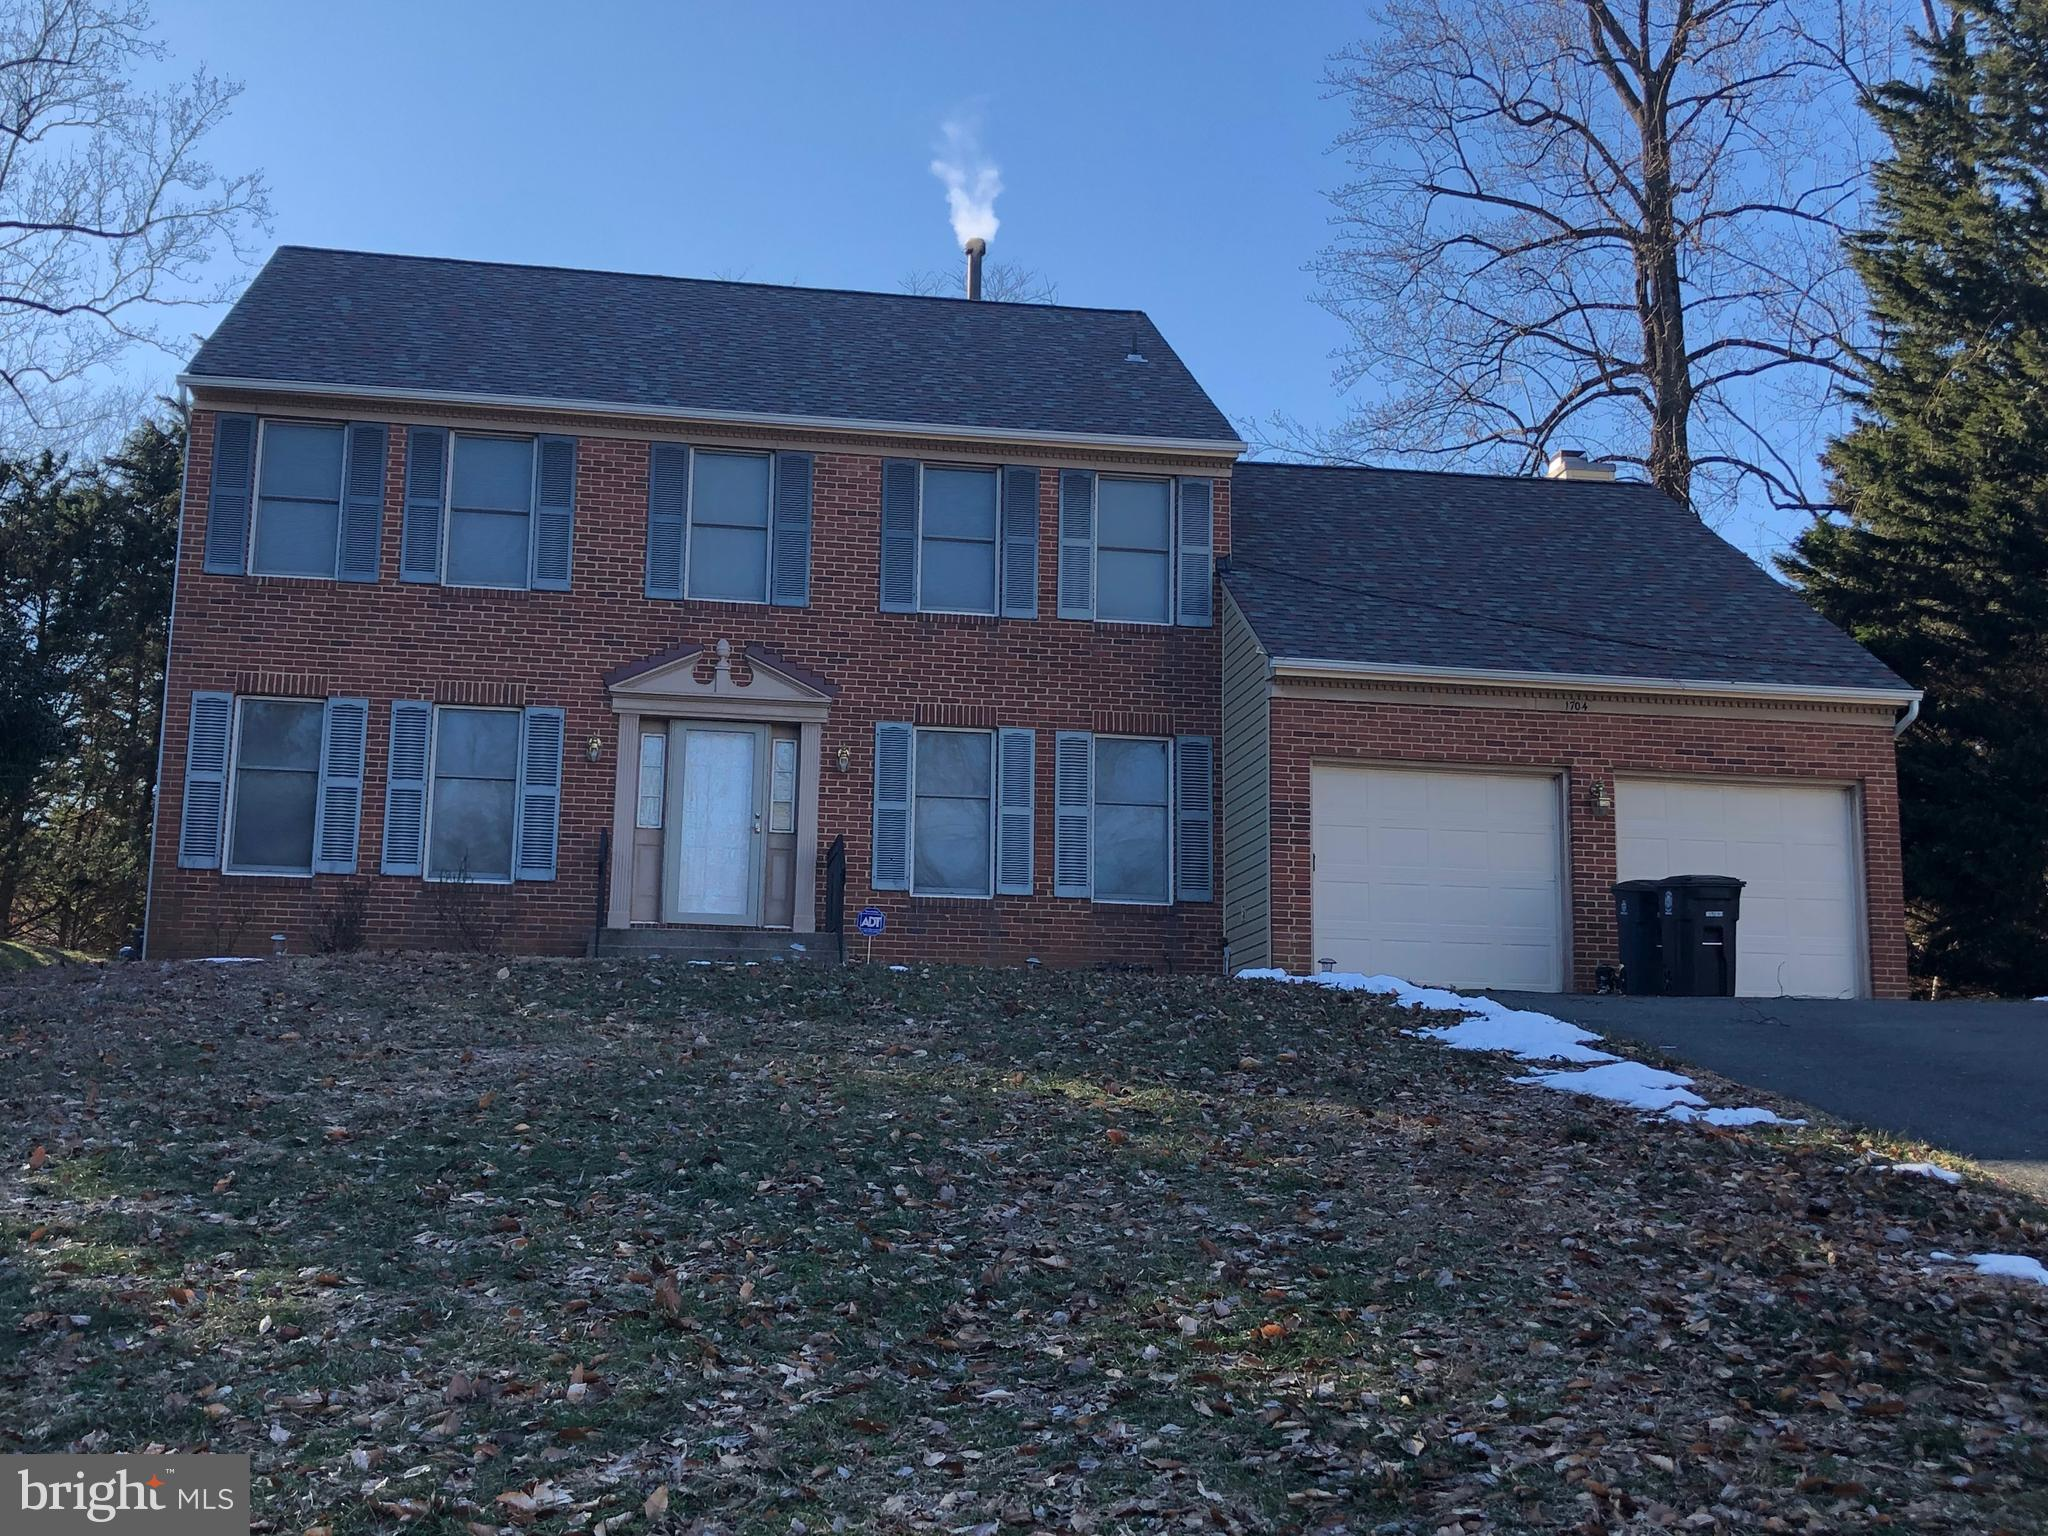 1704 DORAL Ct, Bowie, MD, 20721